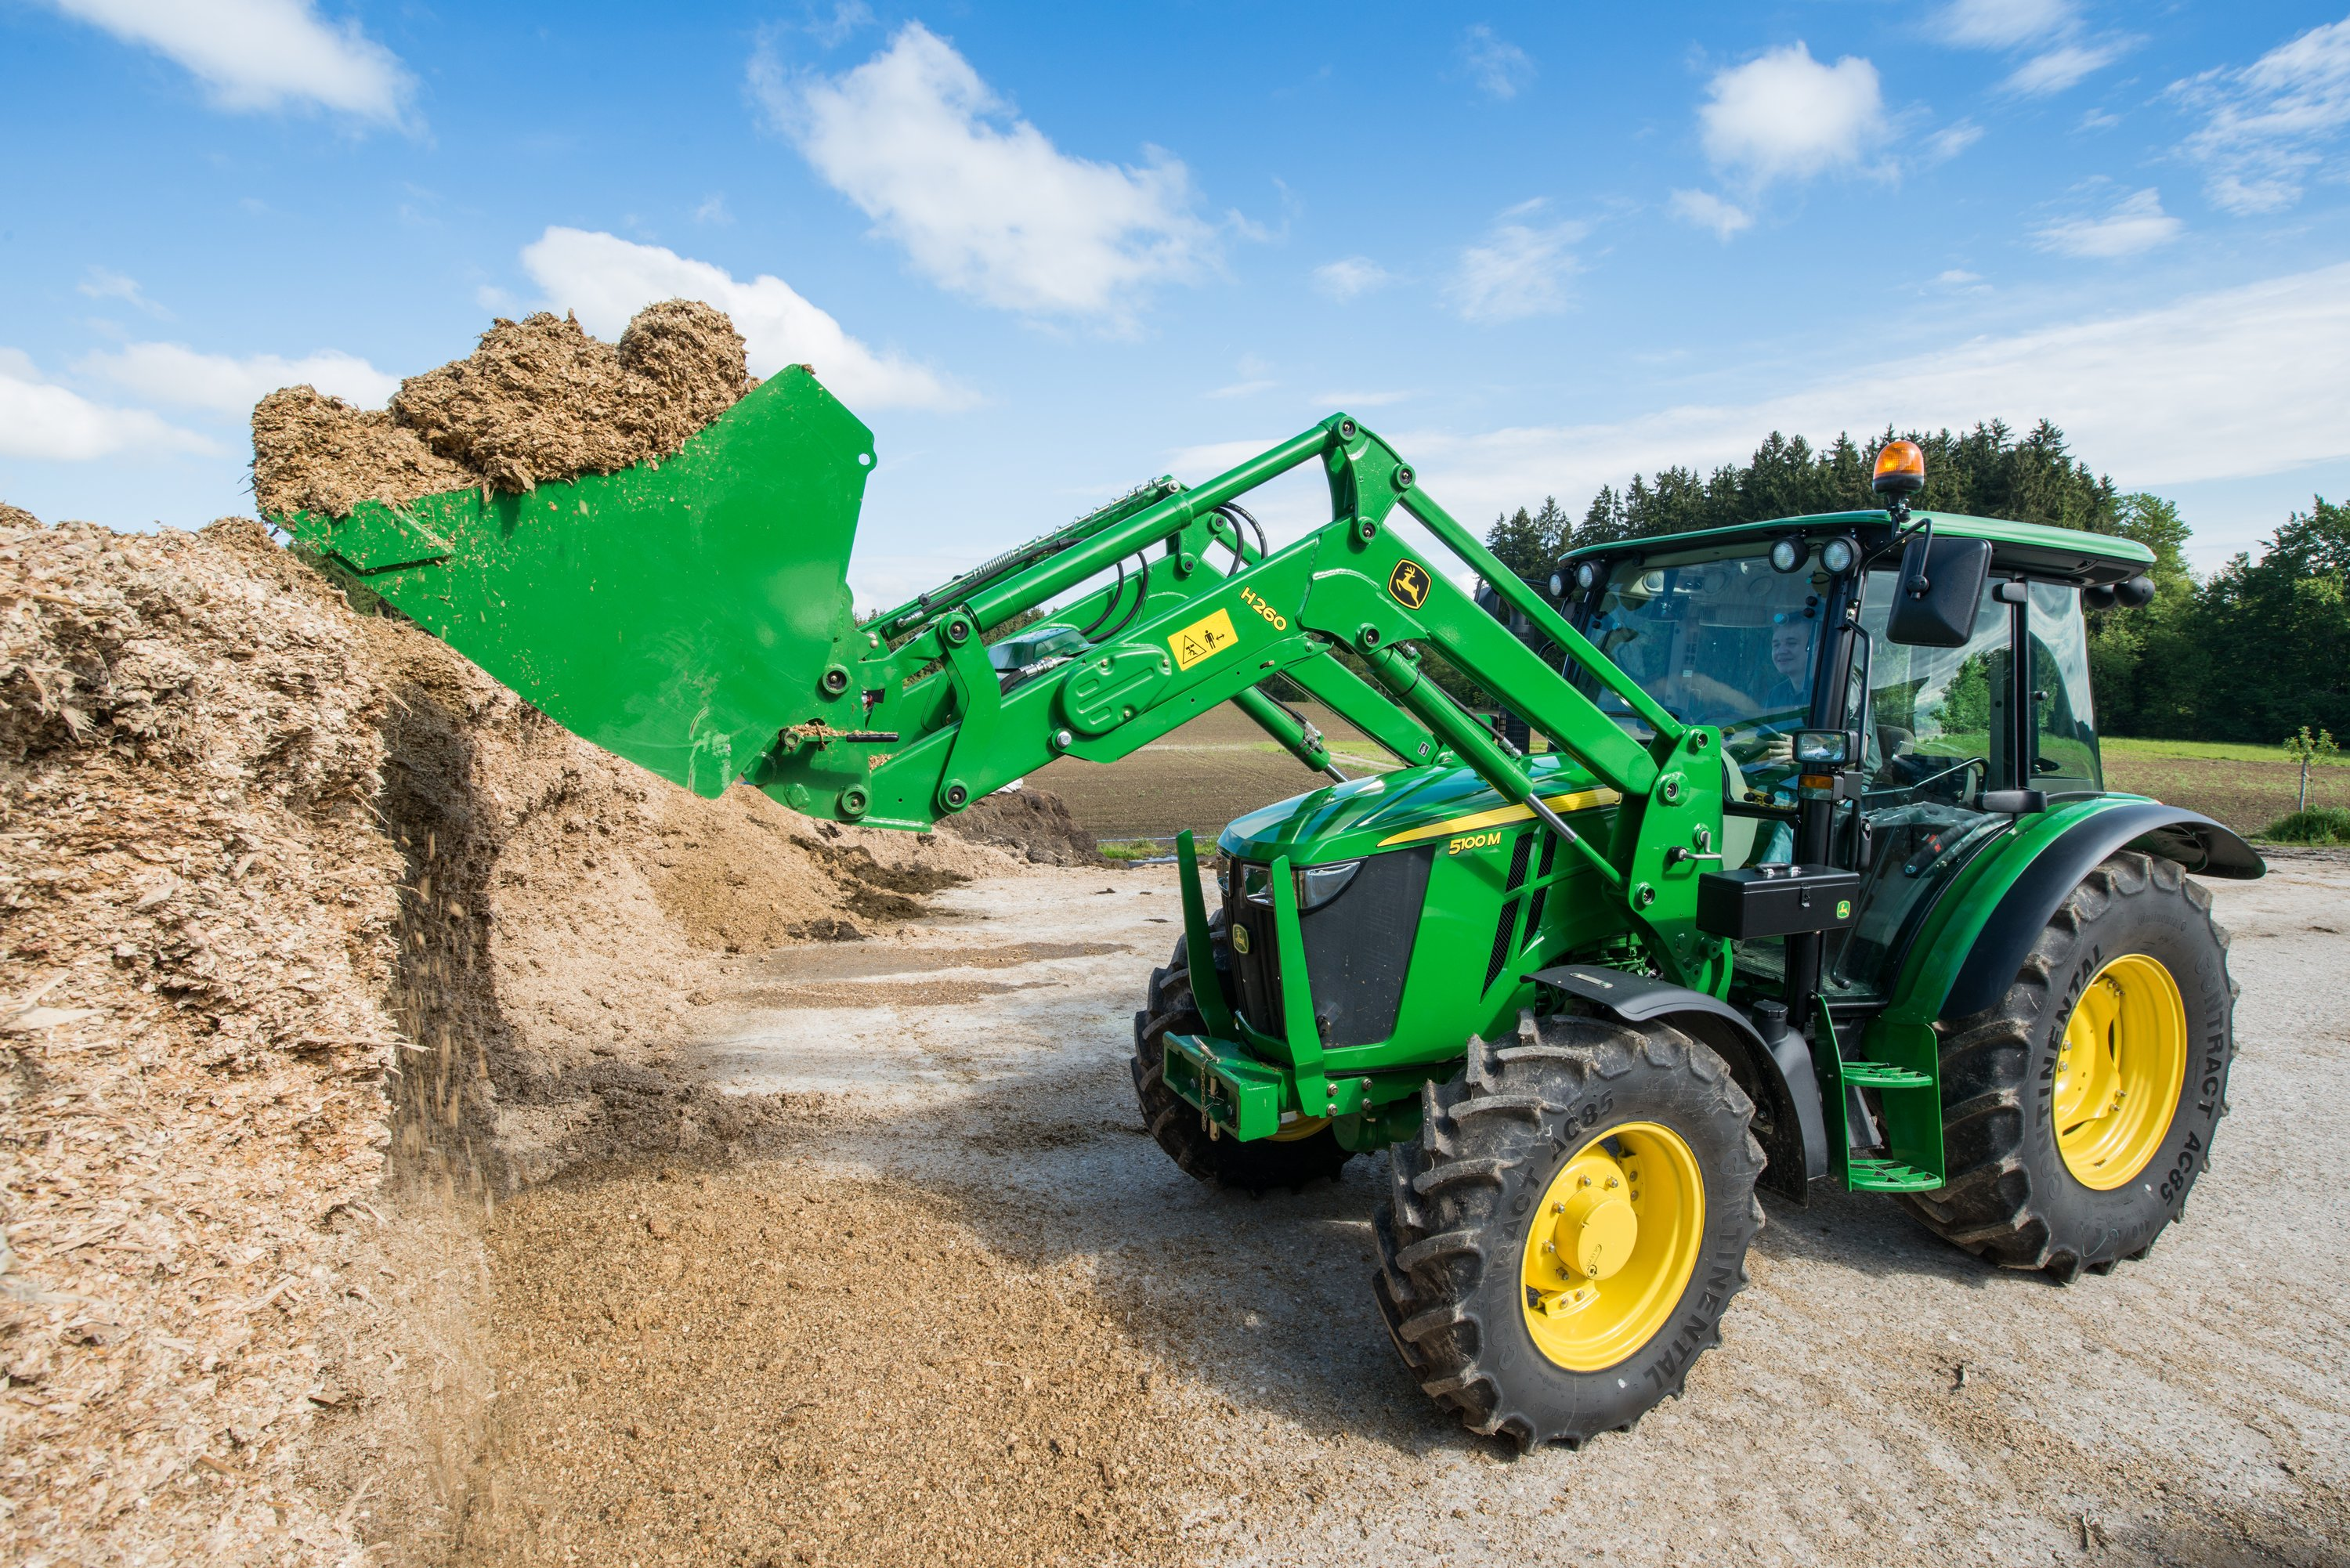 John Deere 5100M tractor with H260 front loader